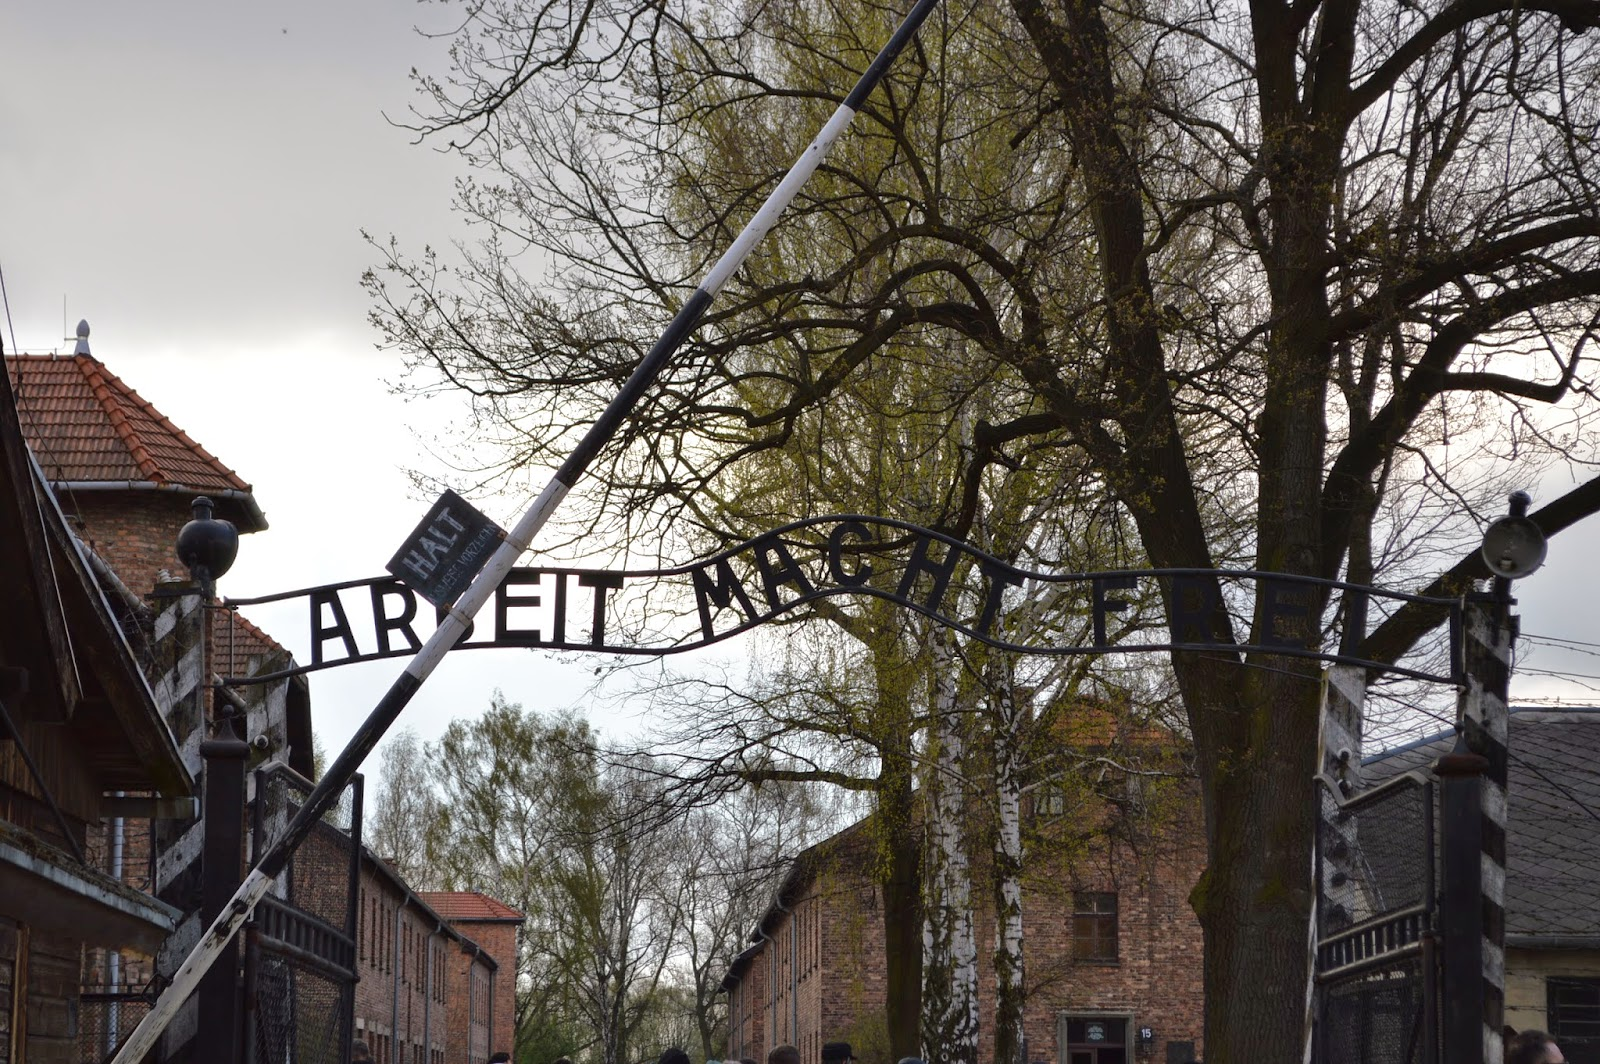 Auschwitz 1 day study tour vs regular group tour in Sept ...